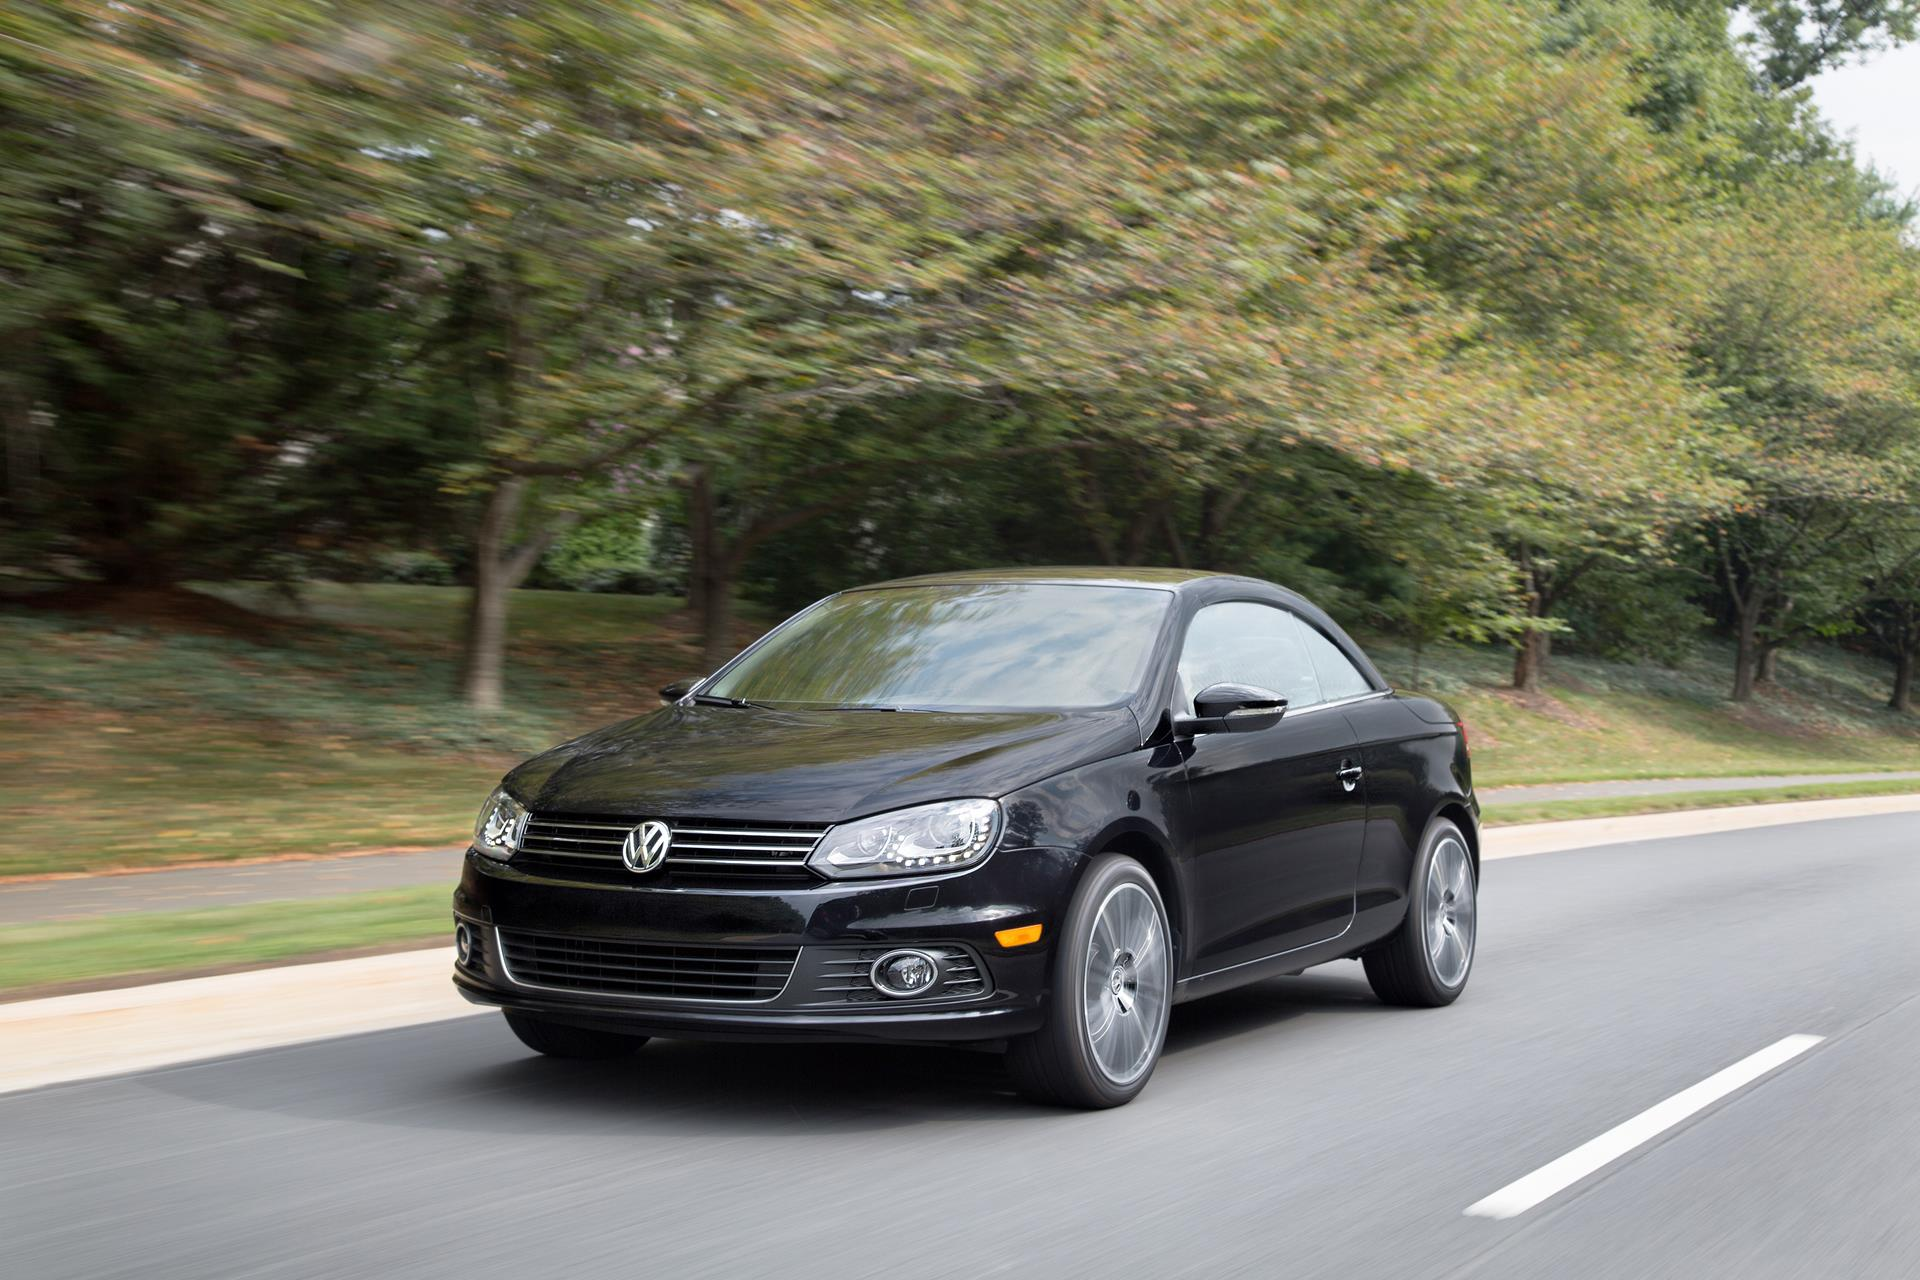 2015 volkswagen eos news and information. Black Bedroom Furniture Sets. Home Design Ideas